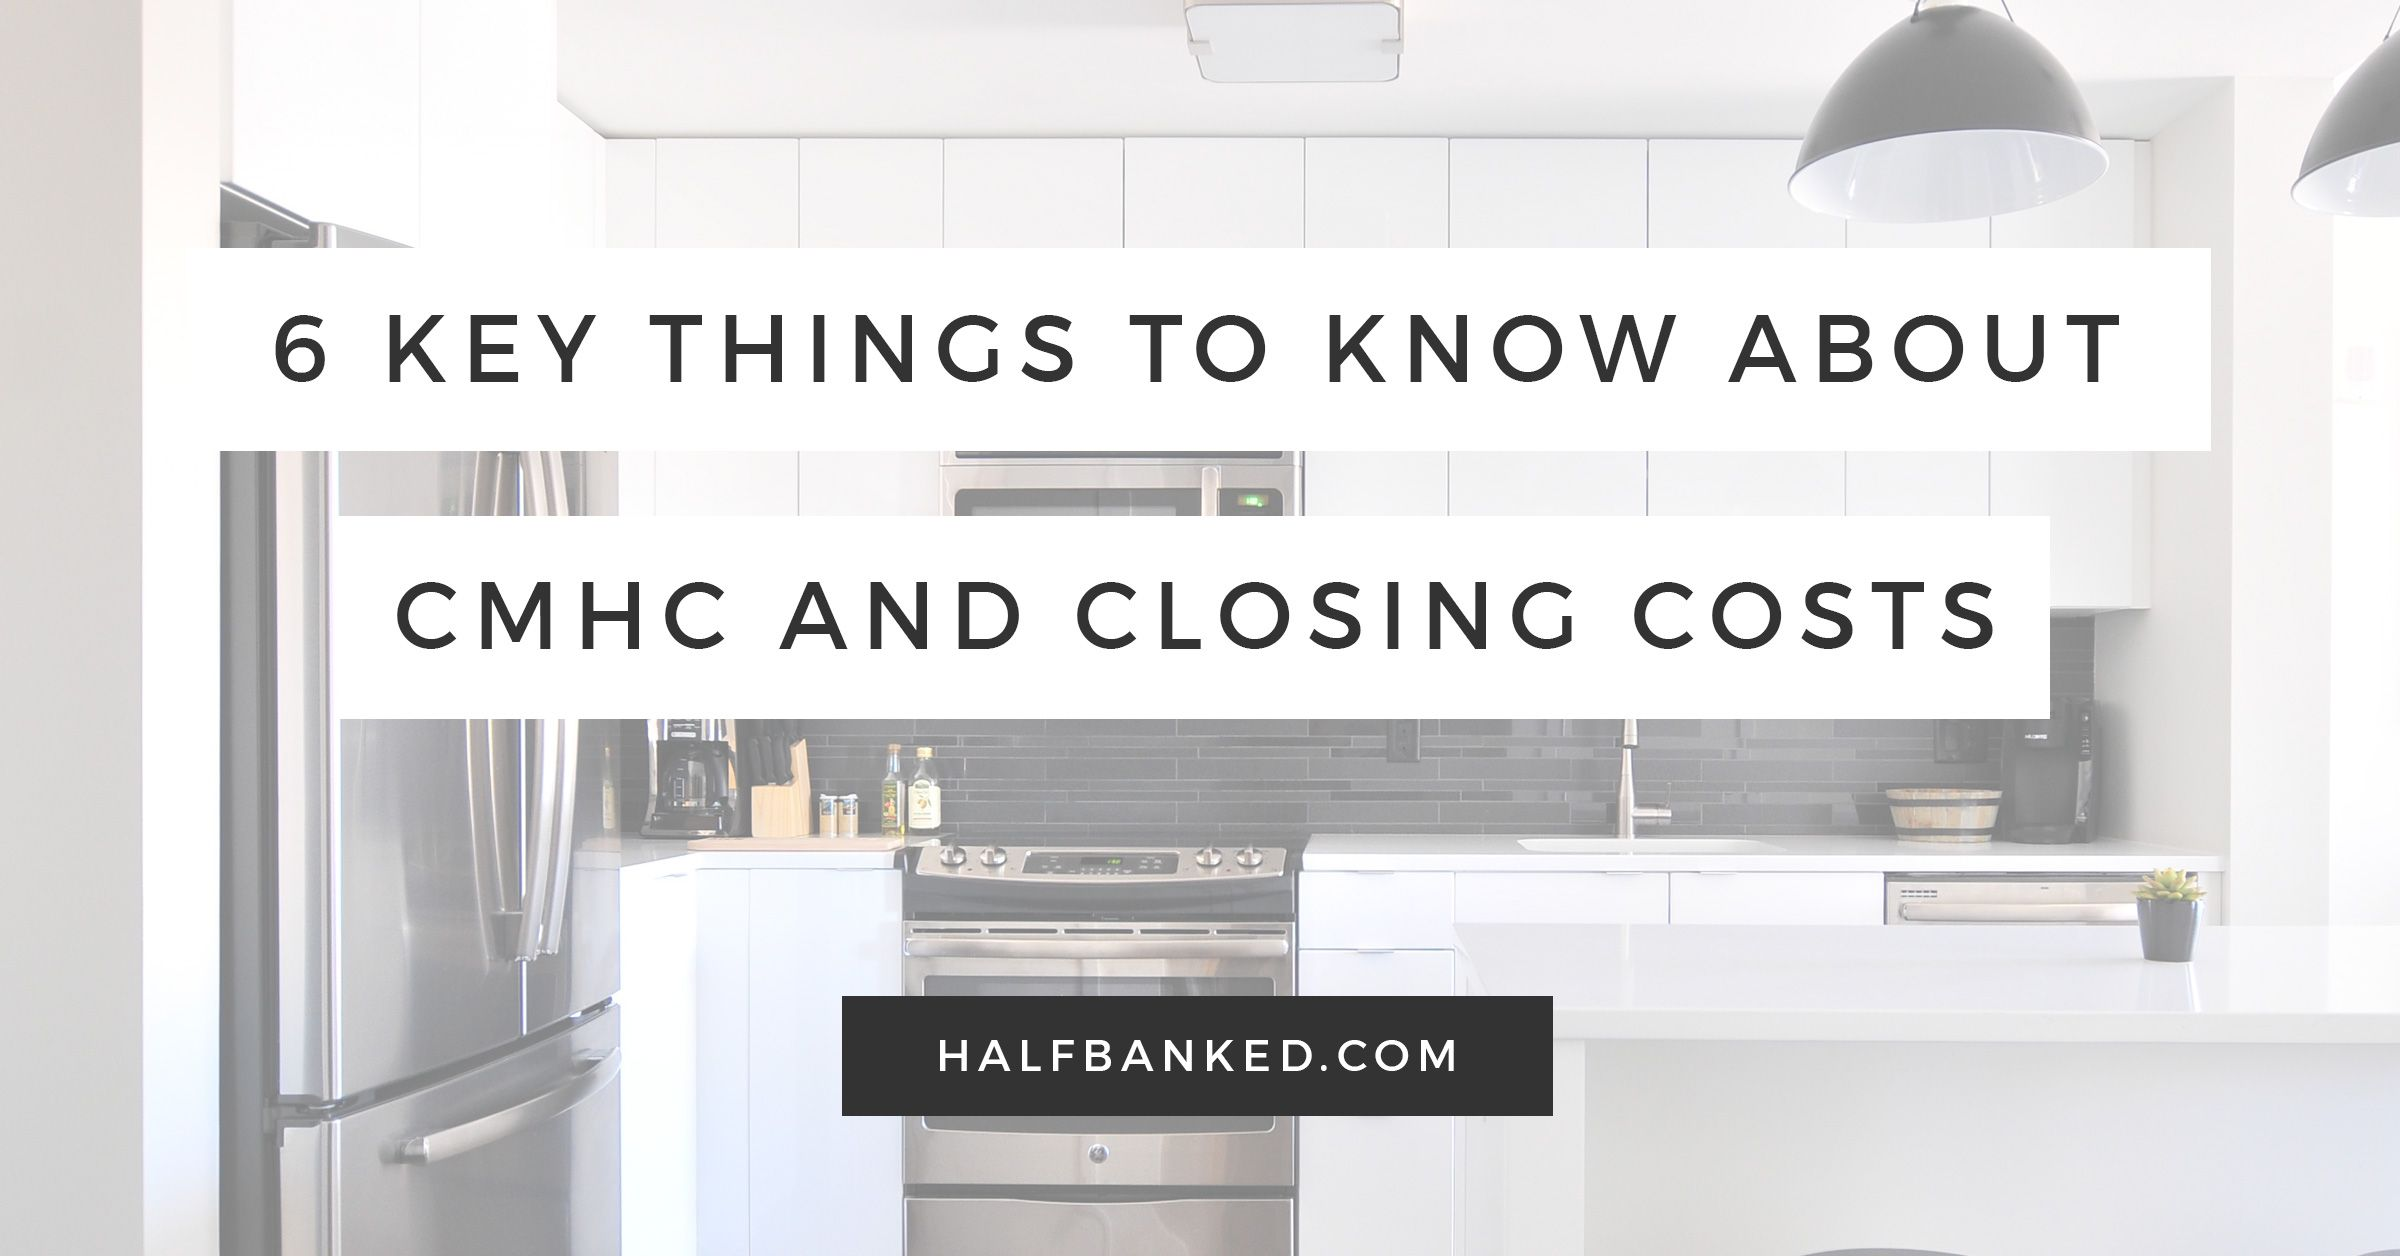 What Do You Need to Know About CMHC and Closing Costs